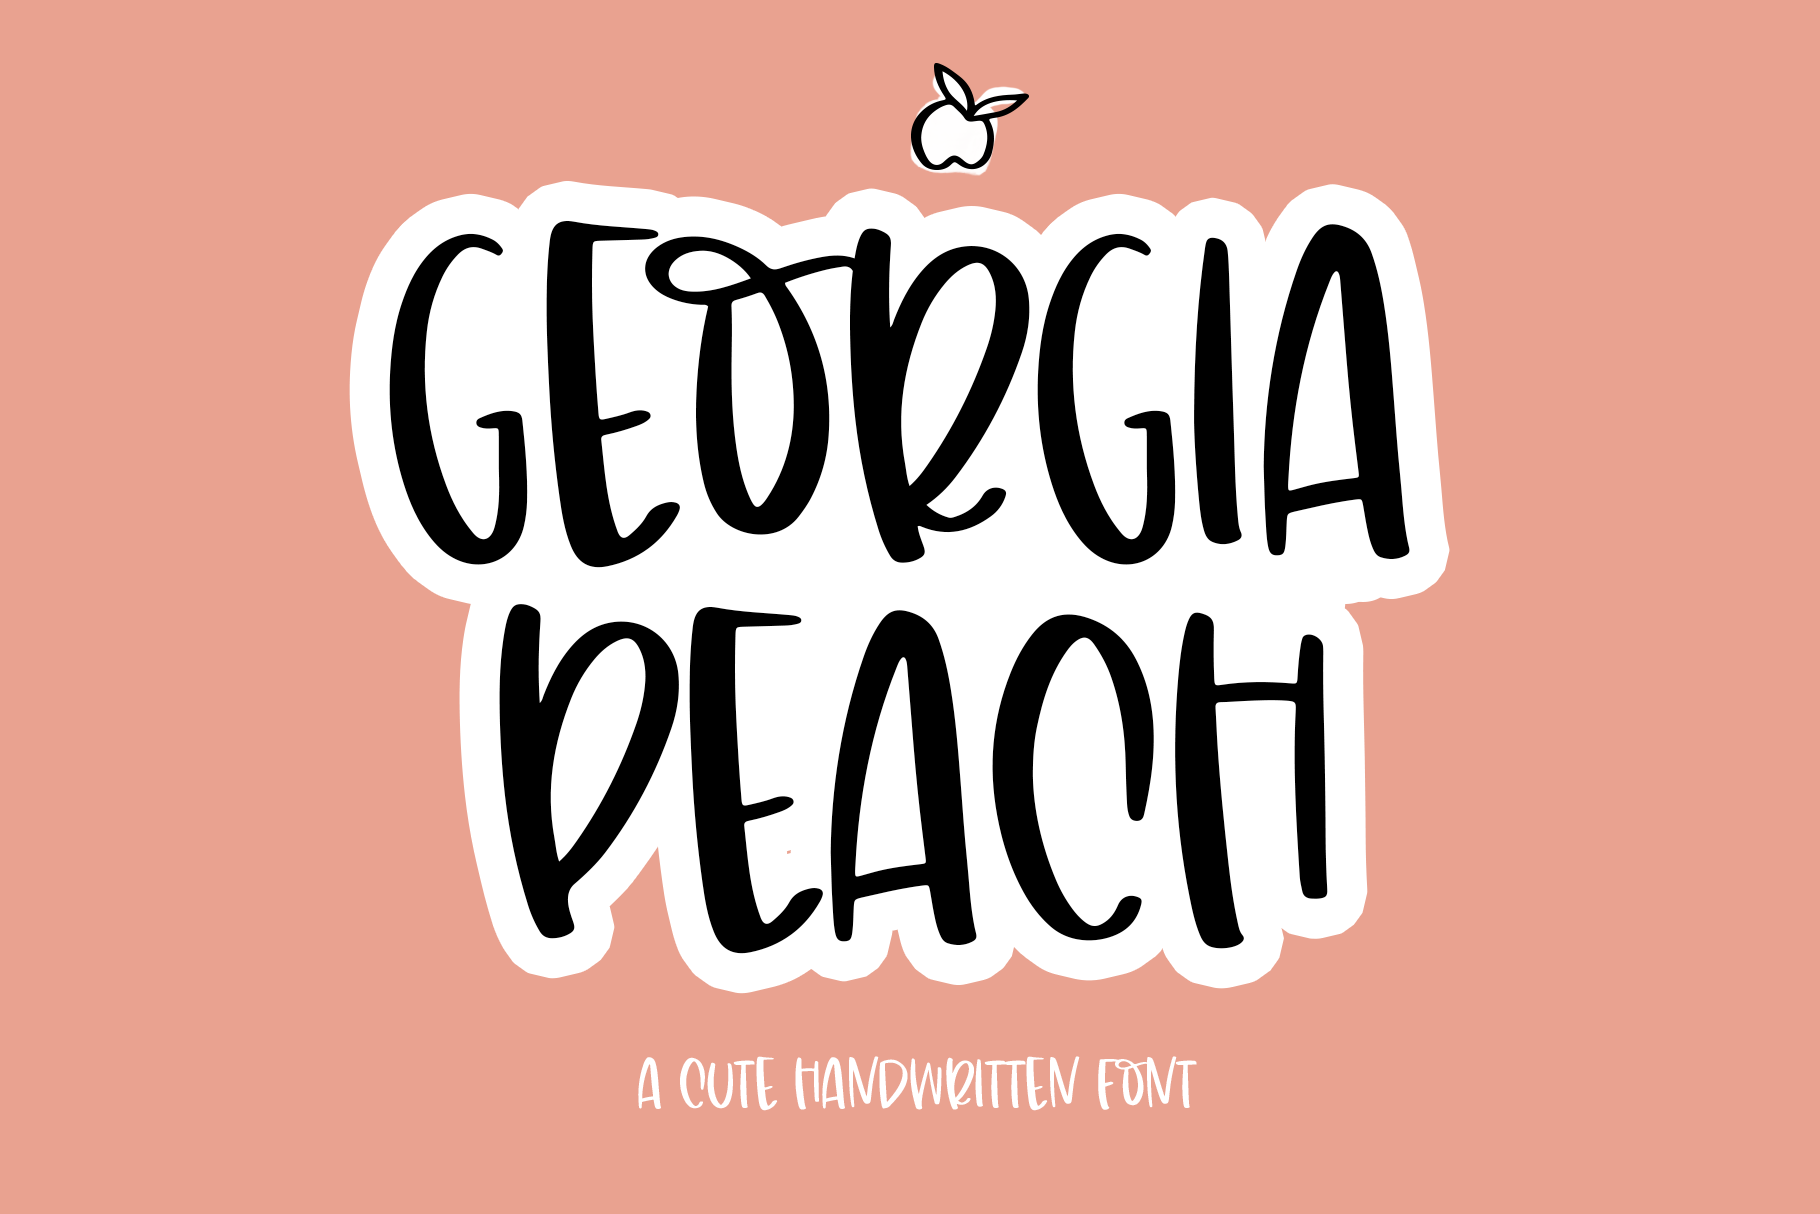 Georgia Peach - A Fun Handwritten Font example image 1